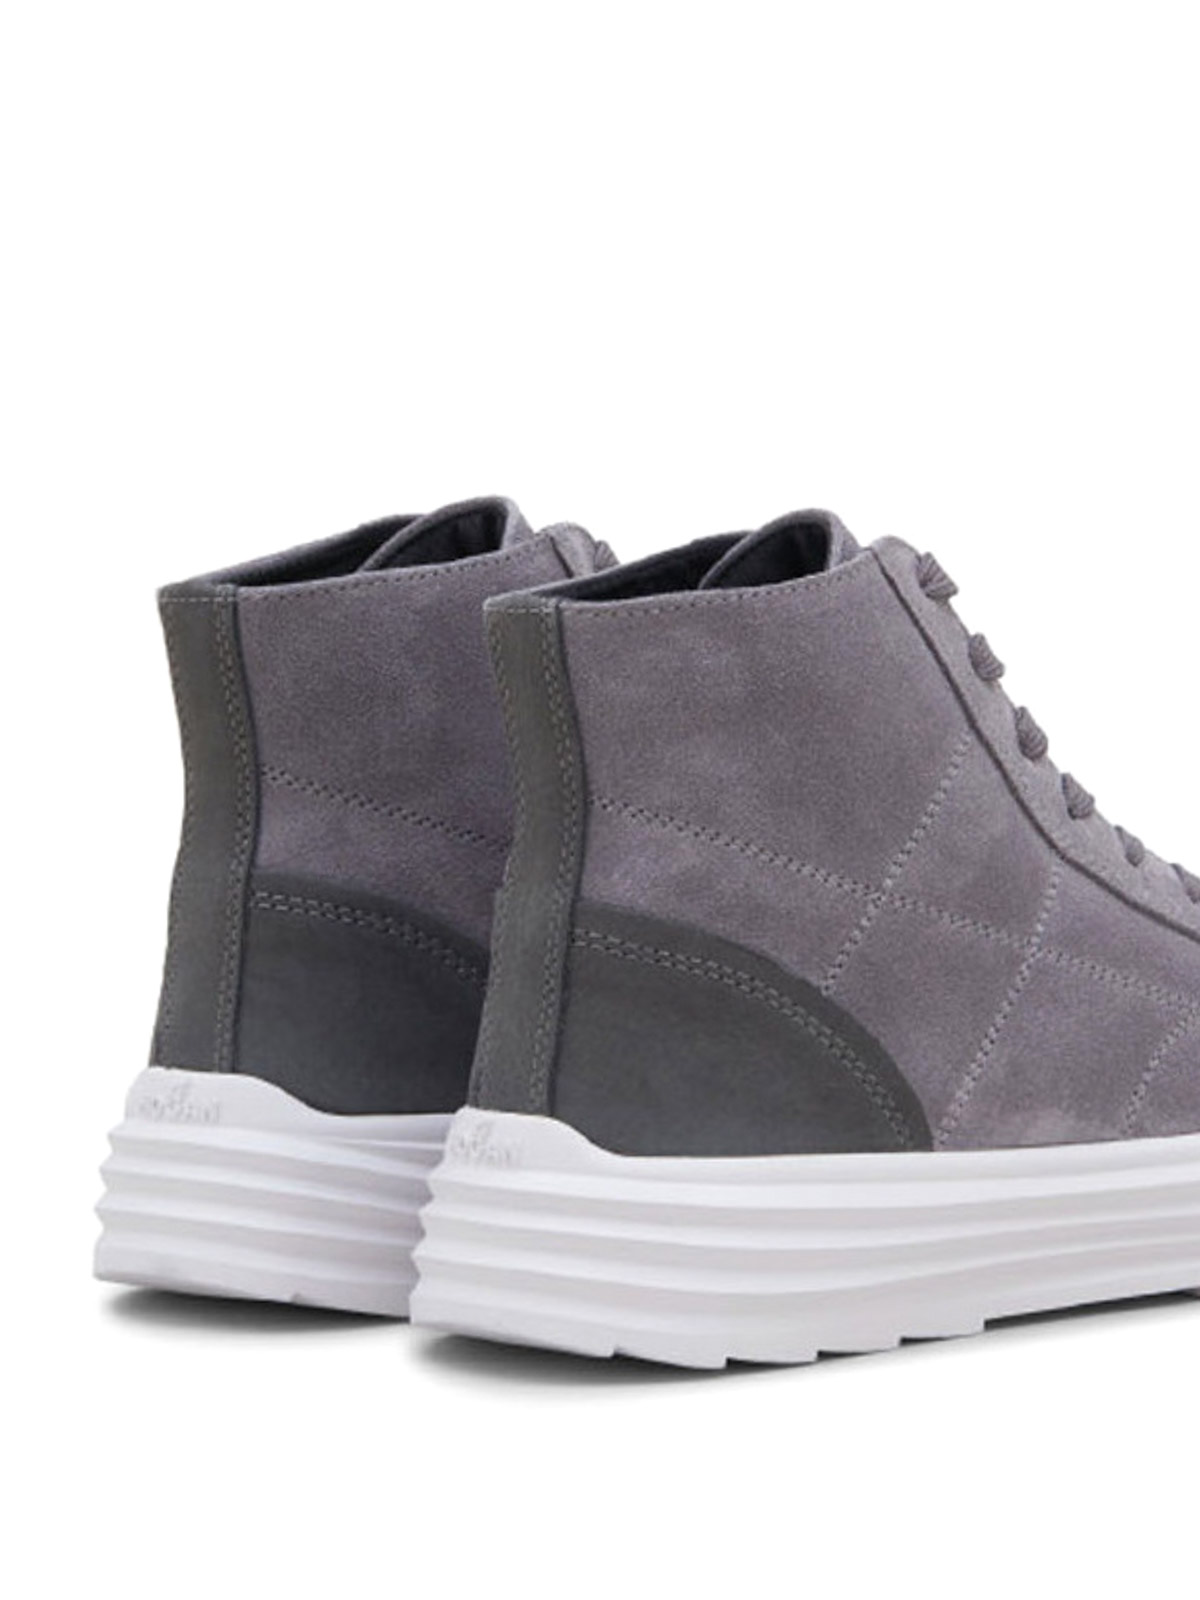 Hogan - Helix H341 quilted suede sneakers - اسپرت،اسنیکرز ...